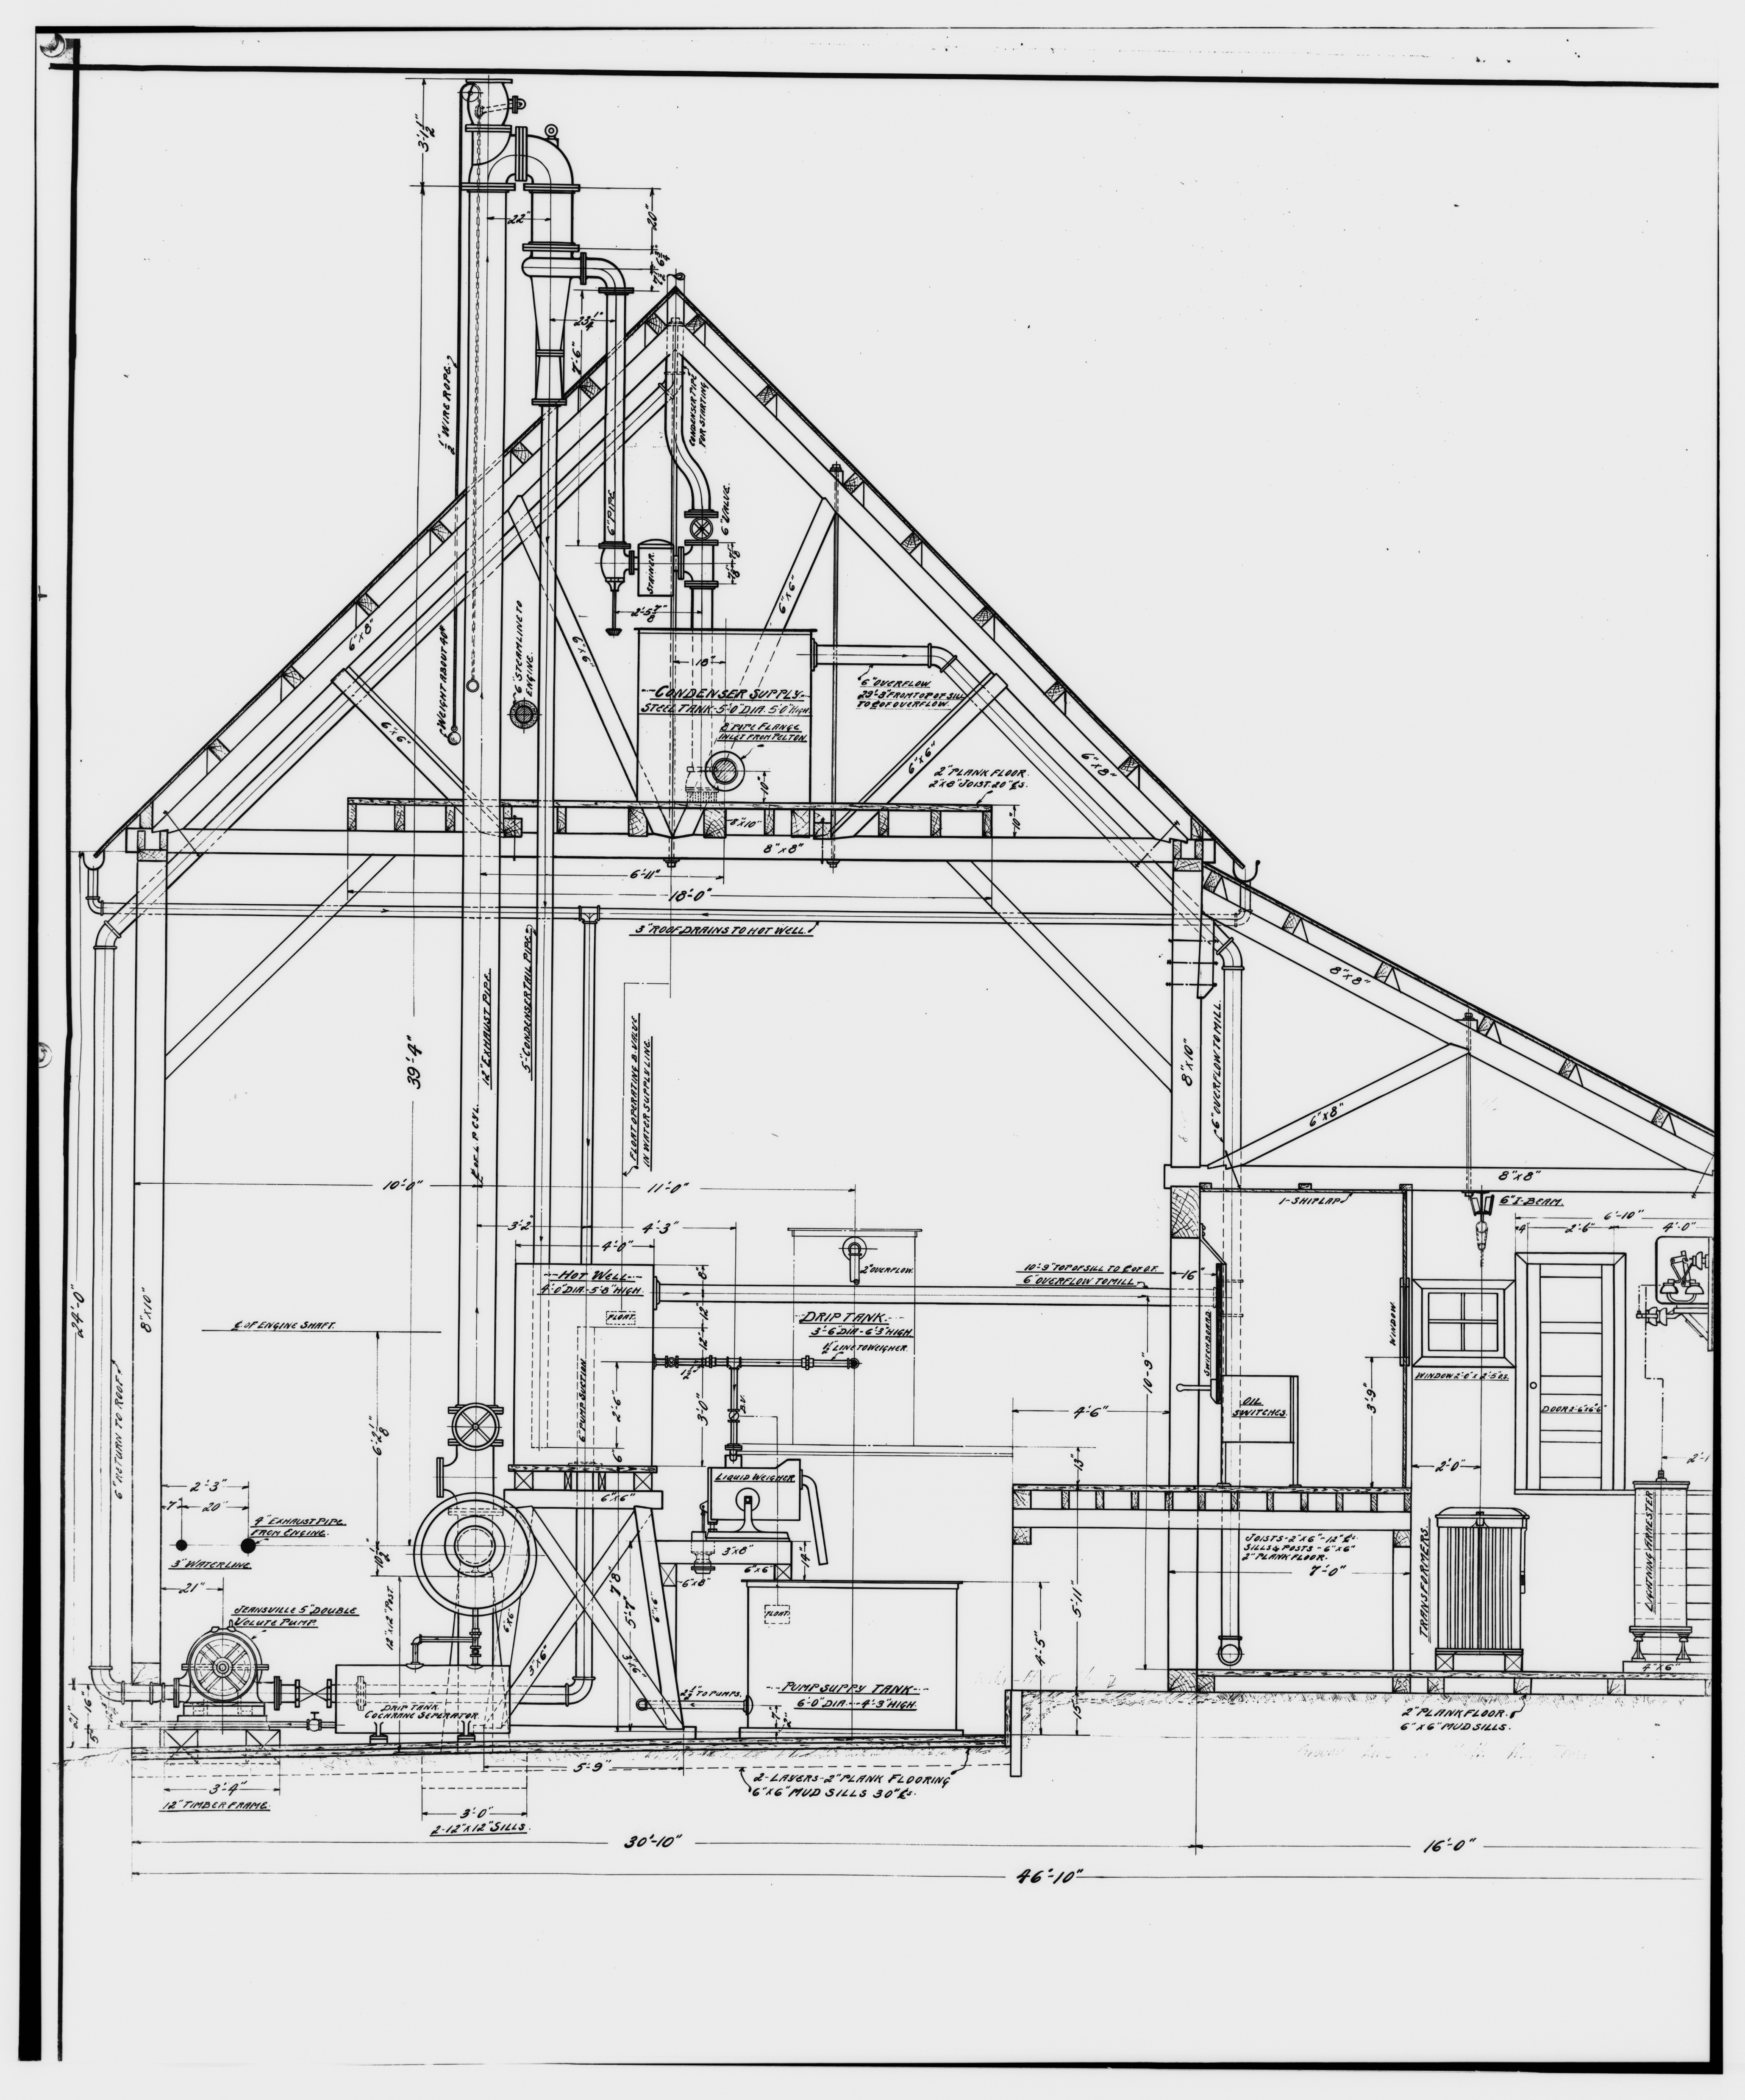 File:36. PHOTOCOPY OF DRAWING OF POWER PLANT, SECTION, OCT